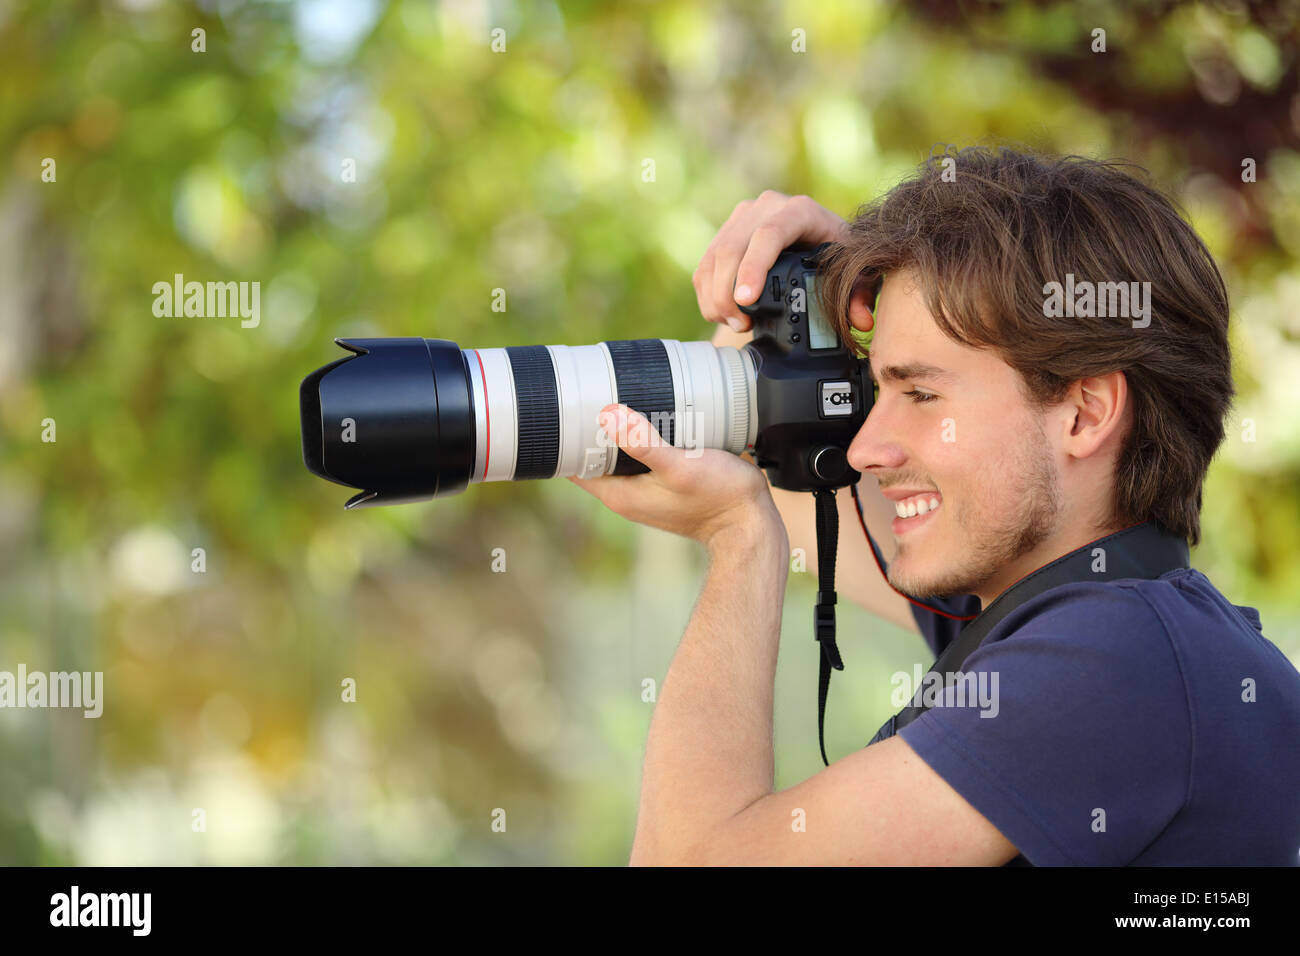 Photographer Taking A Photograph Outdoor With A Dslr Camera With A Stock Photo Alamy